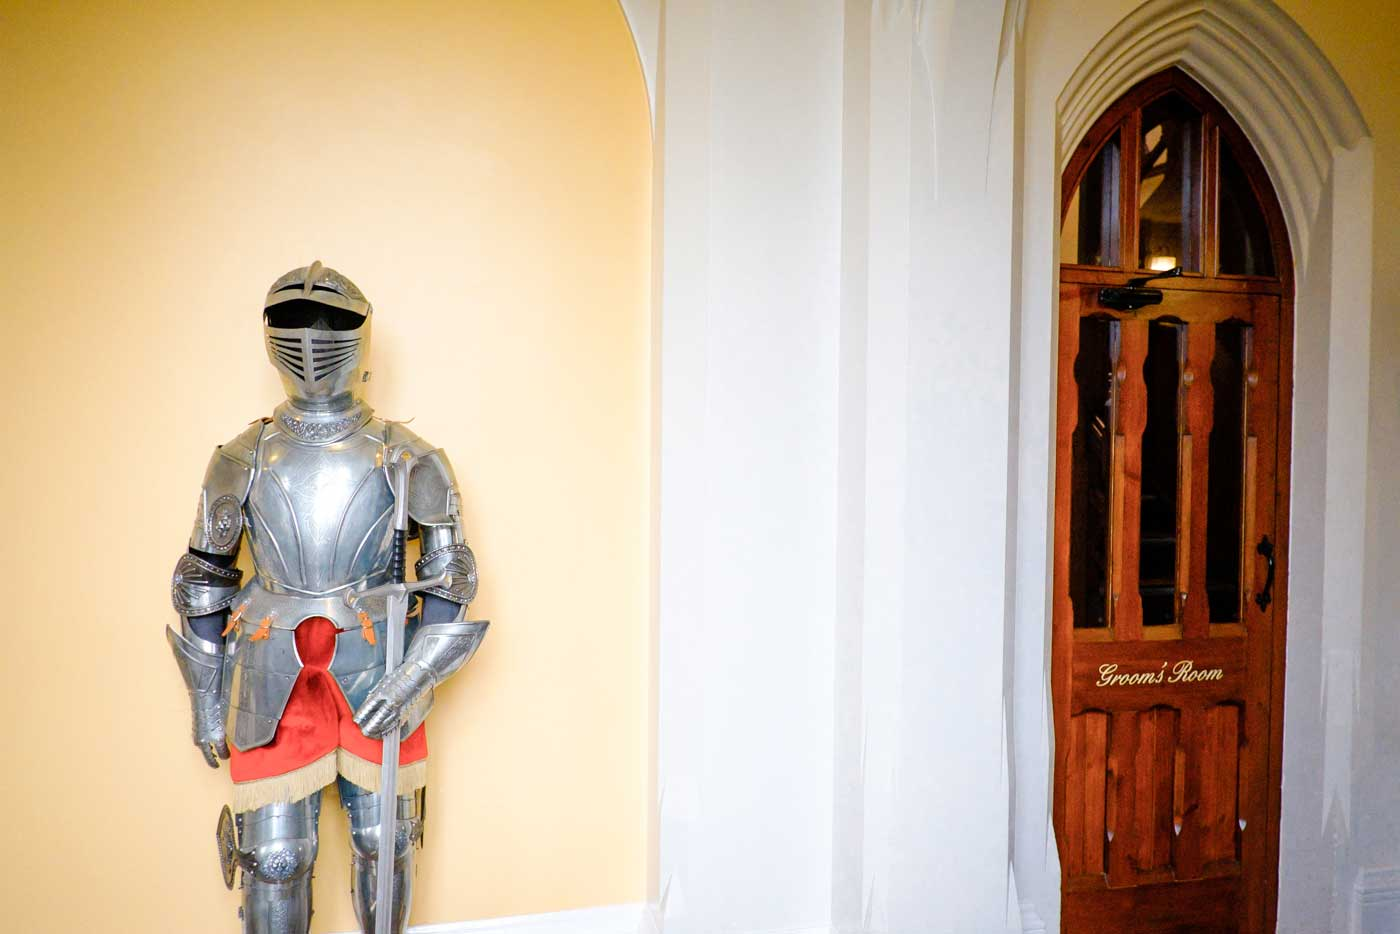 Outside the Groom's Room at Stanbrook Abbey